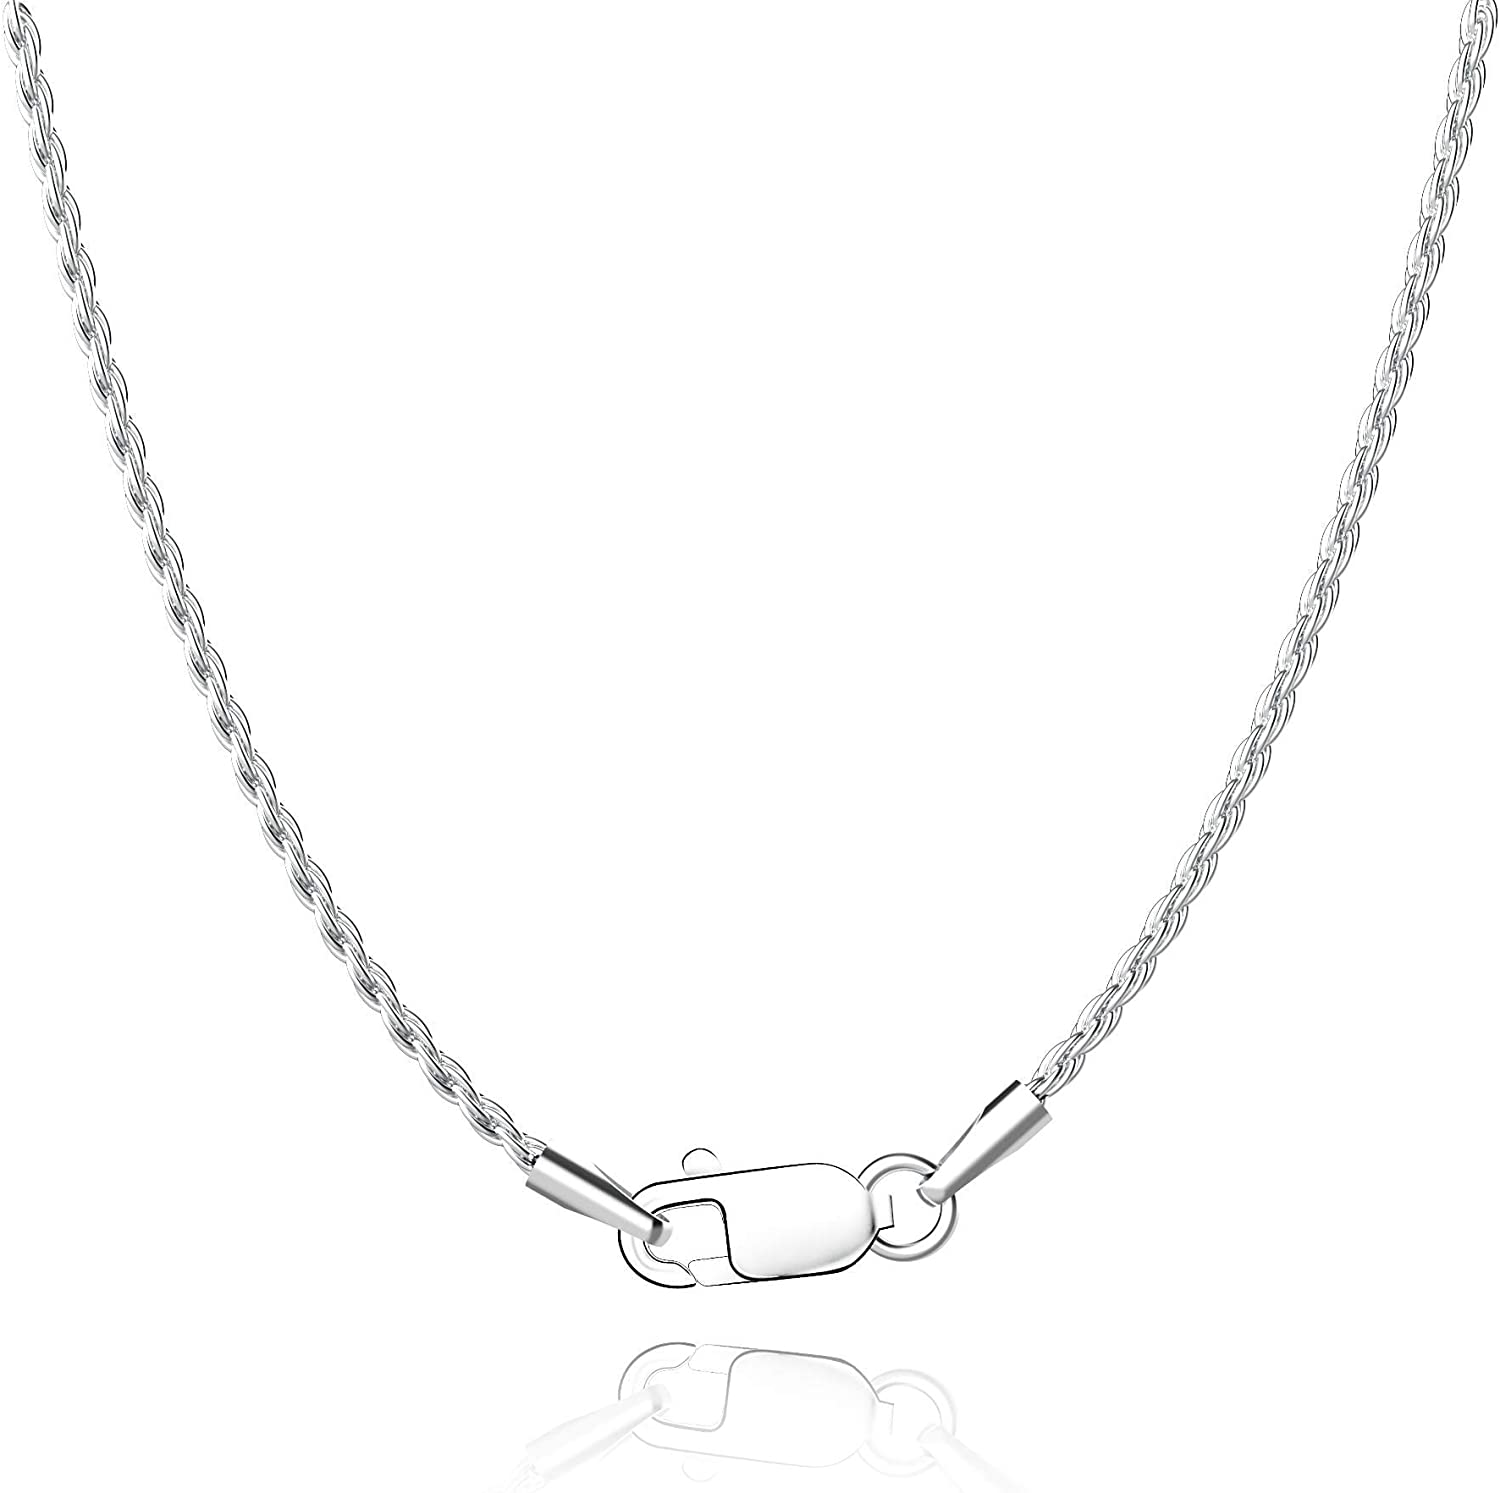 Collection The Pendant Necklaces Silver Plated Shine Hoop Link Designer Handmade Chain Necklaces Gifts for her V